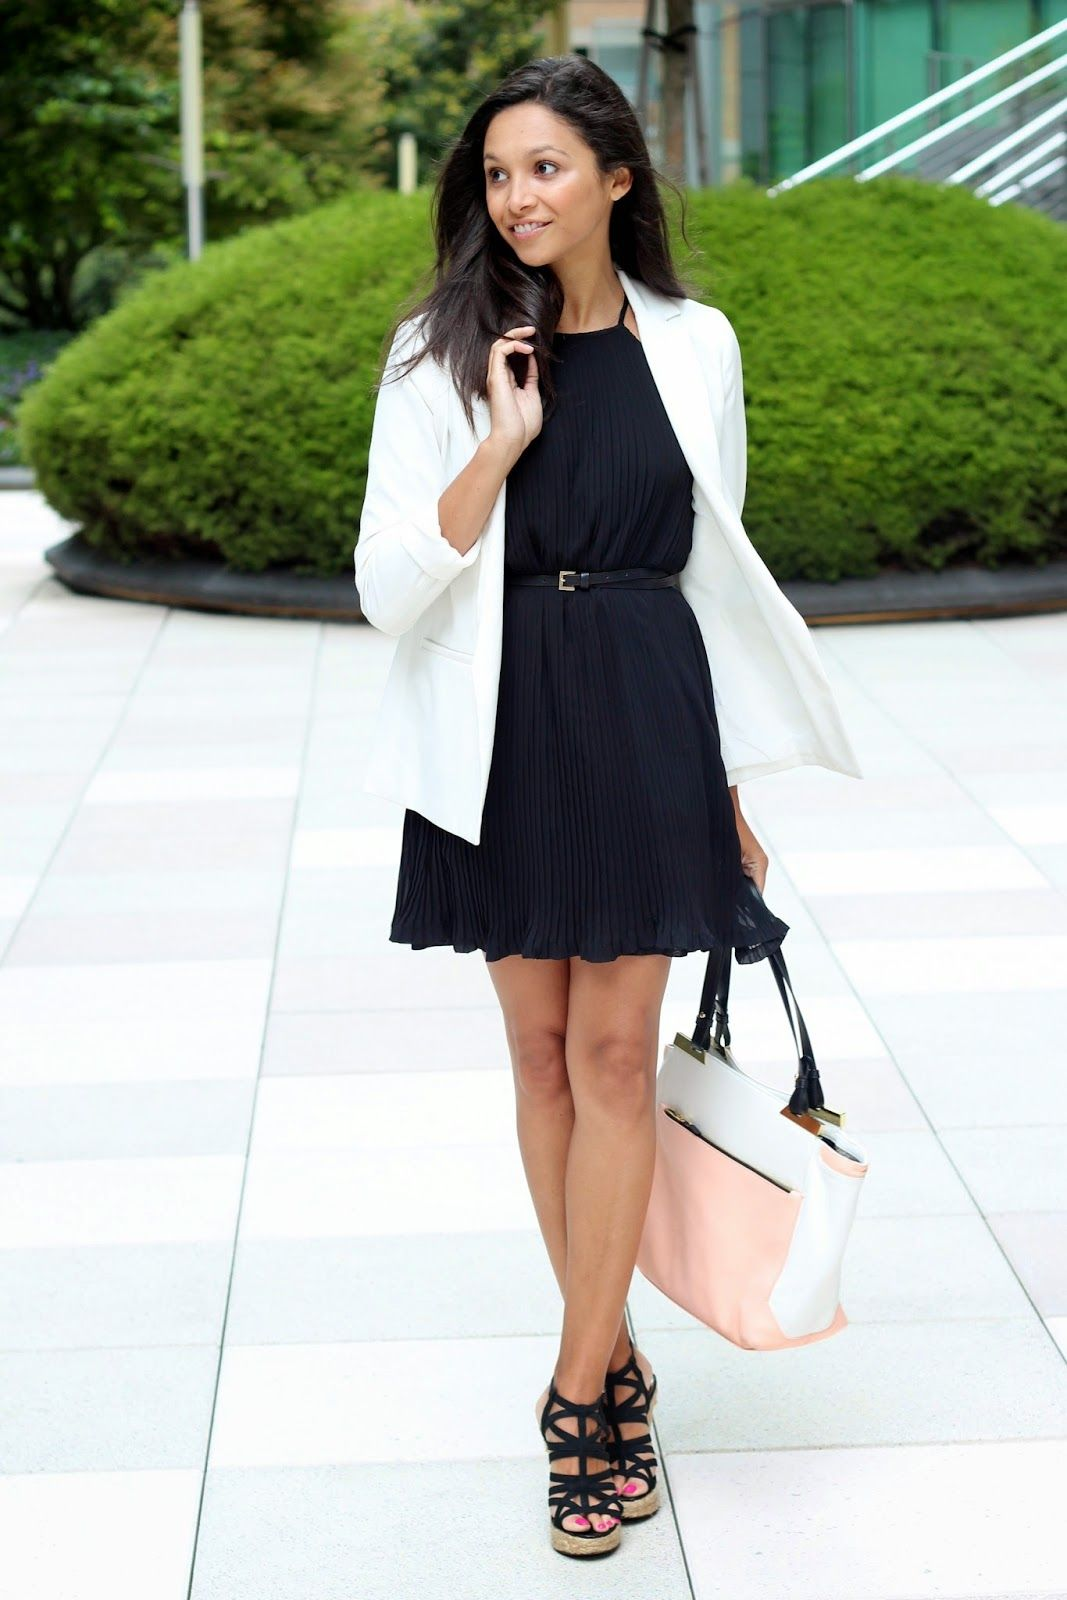 37136ba69fb0a Classic White Blazer, a Little Black Dress, and Statement Wedges make the  perfect date night outfit!